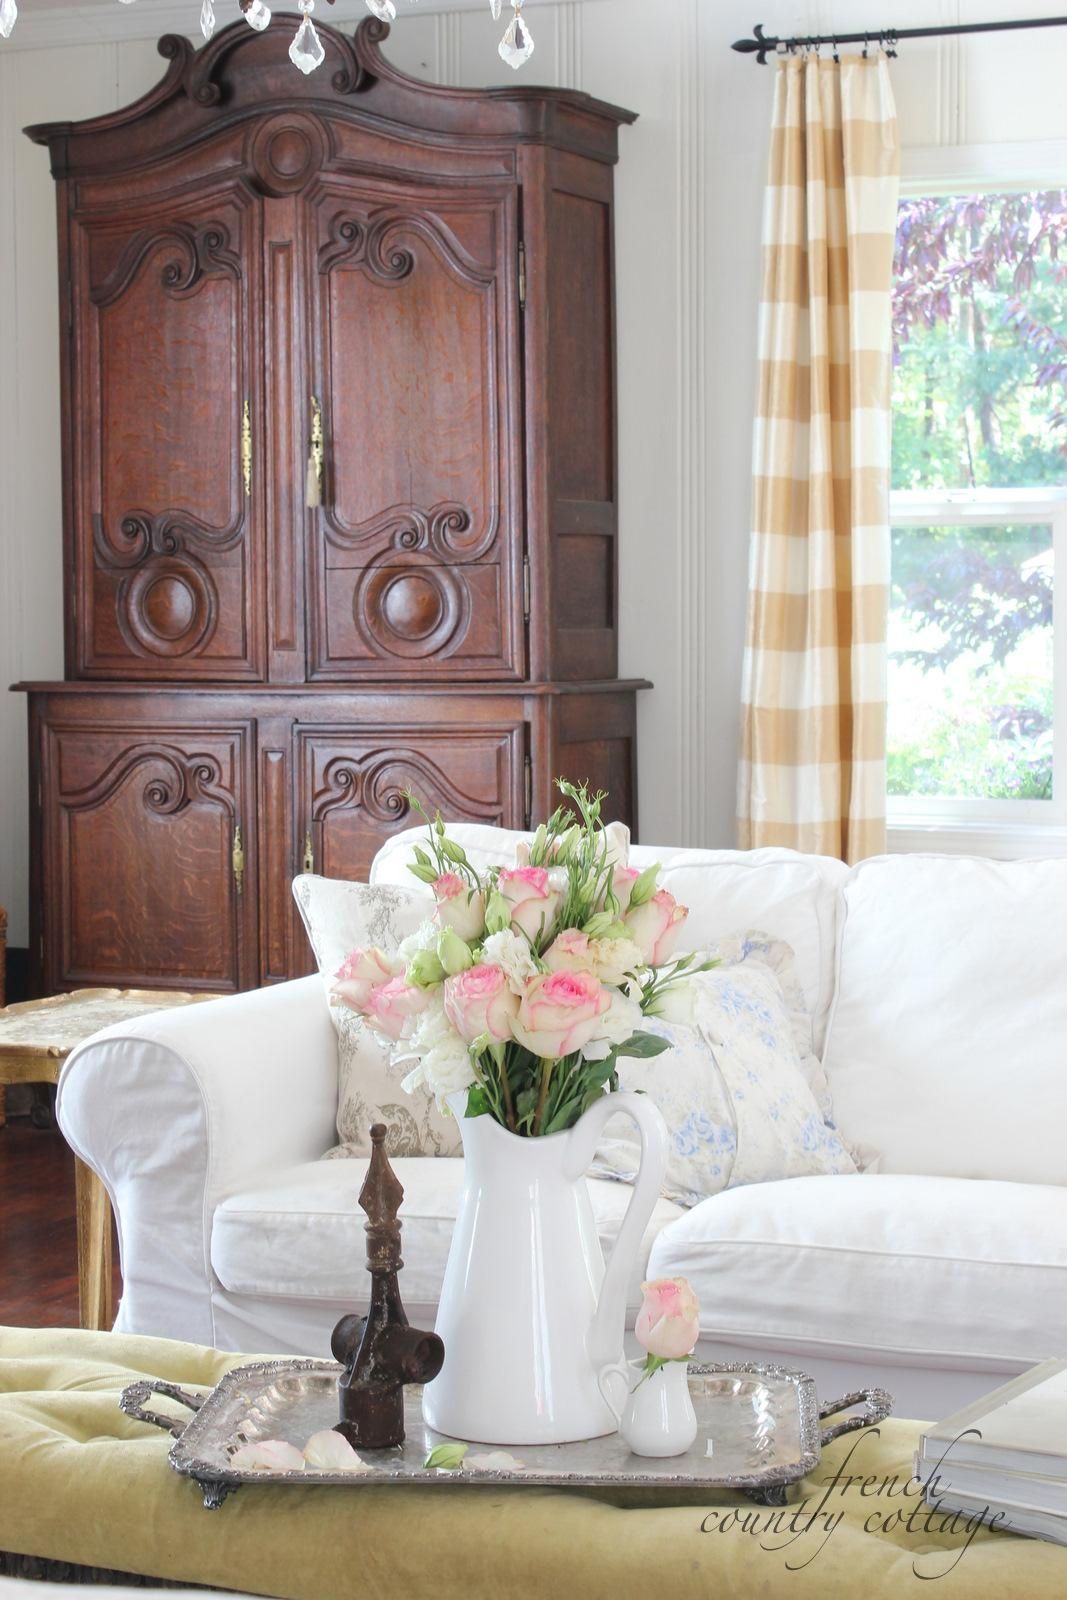 living room chair slipcovers how to decorate a small narrow 20 top country cottage sofas and chairs | sofa ideas